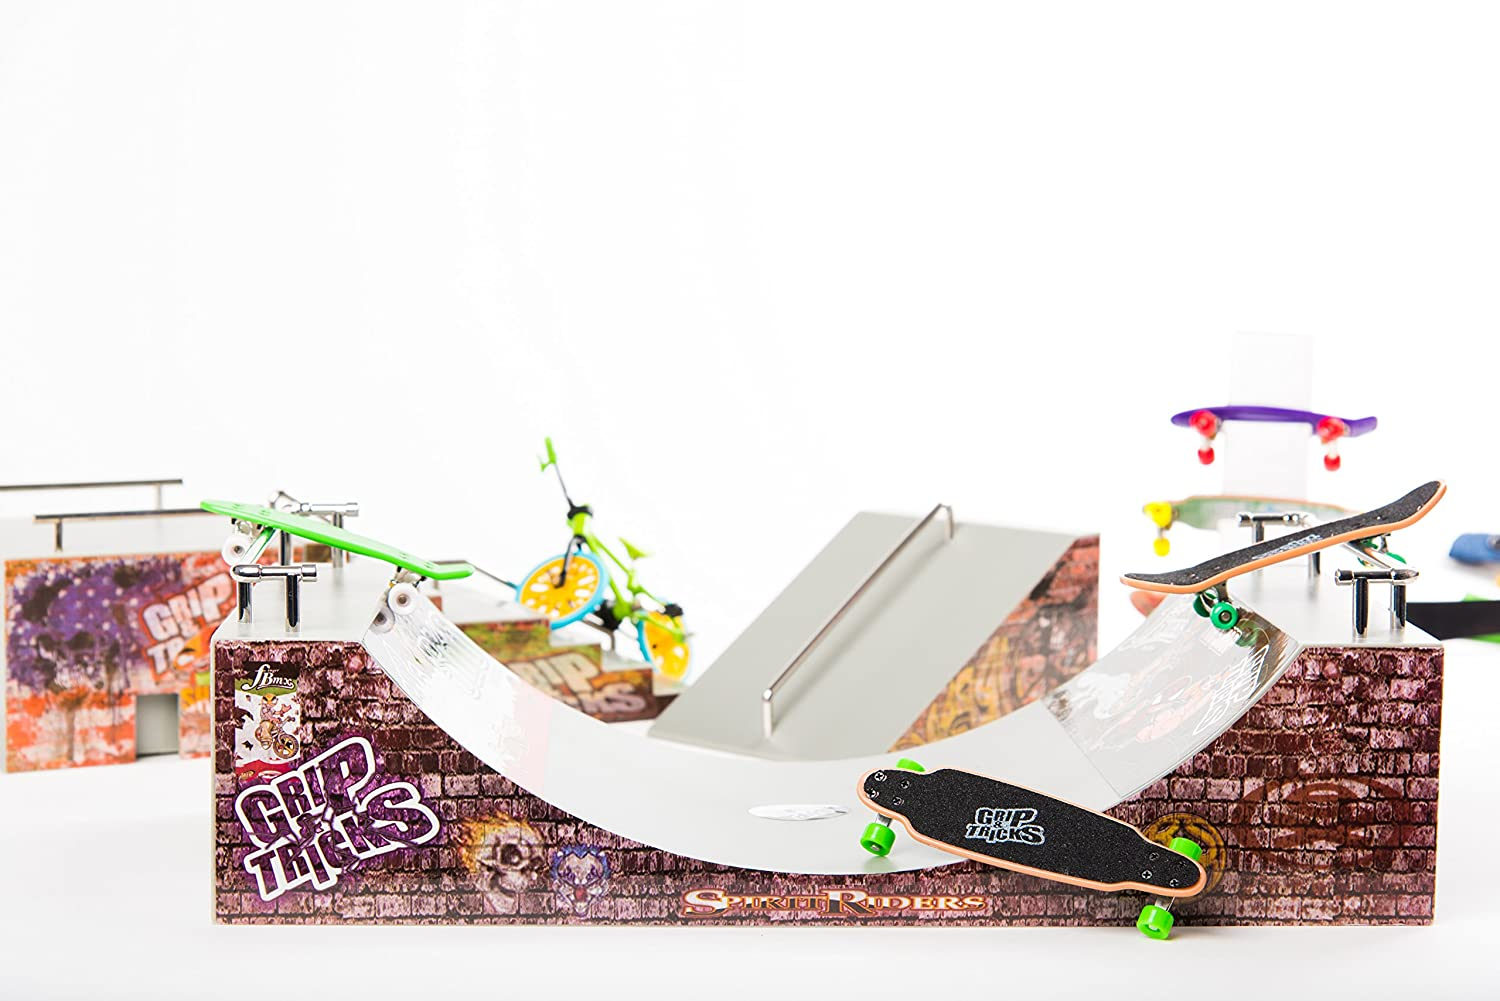 Rampes de Finger Mini skate Grip /& Tricks FUNBOX ET ESCALIER Fingerboard : Dimensions: 28 X 12 X 10 cm